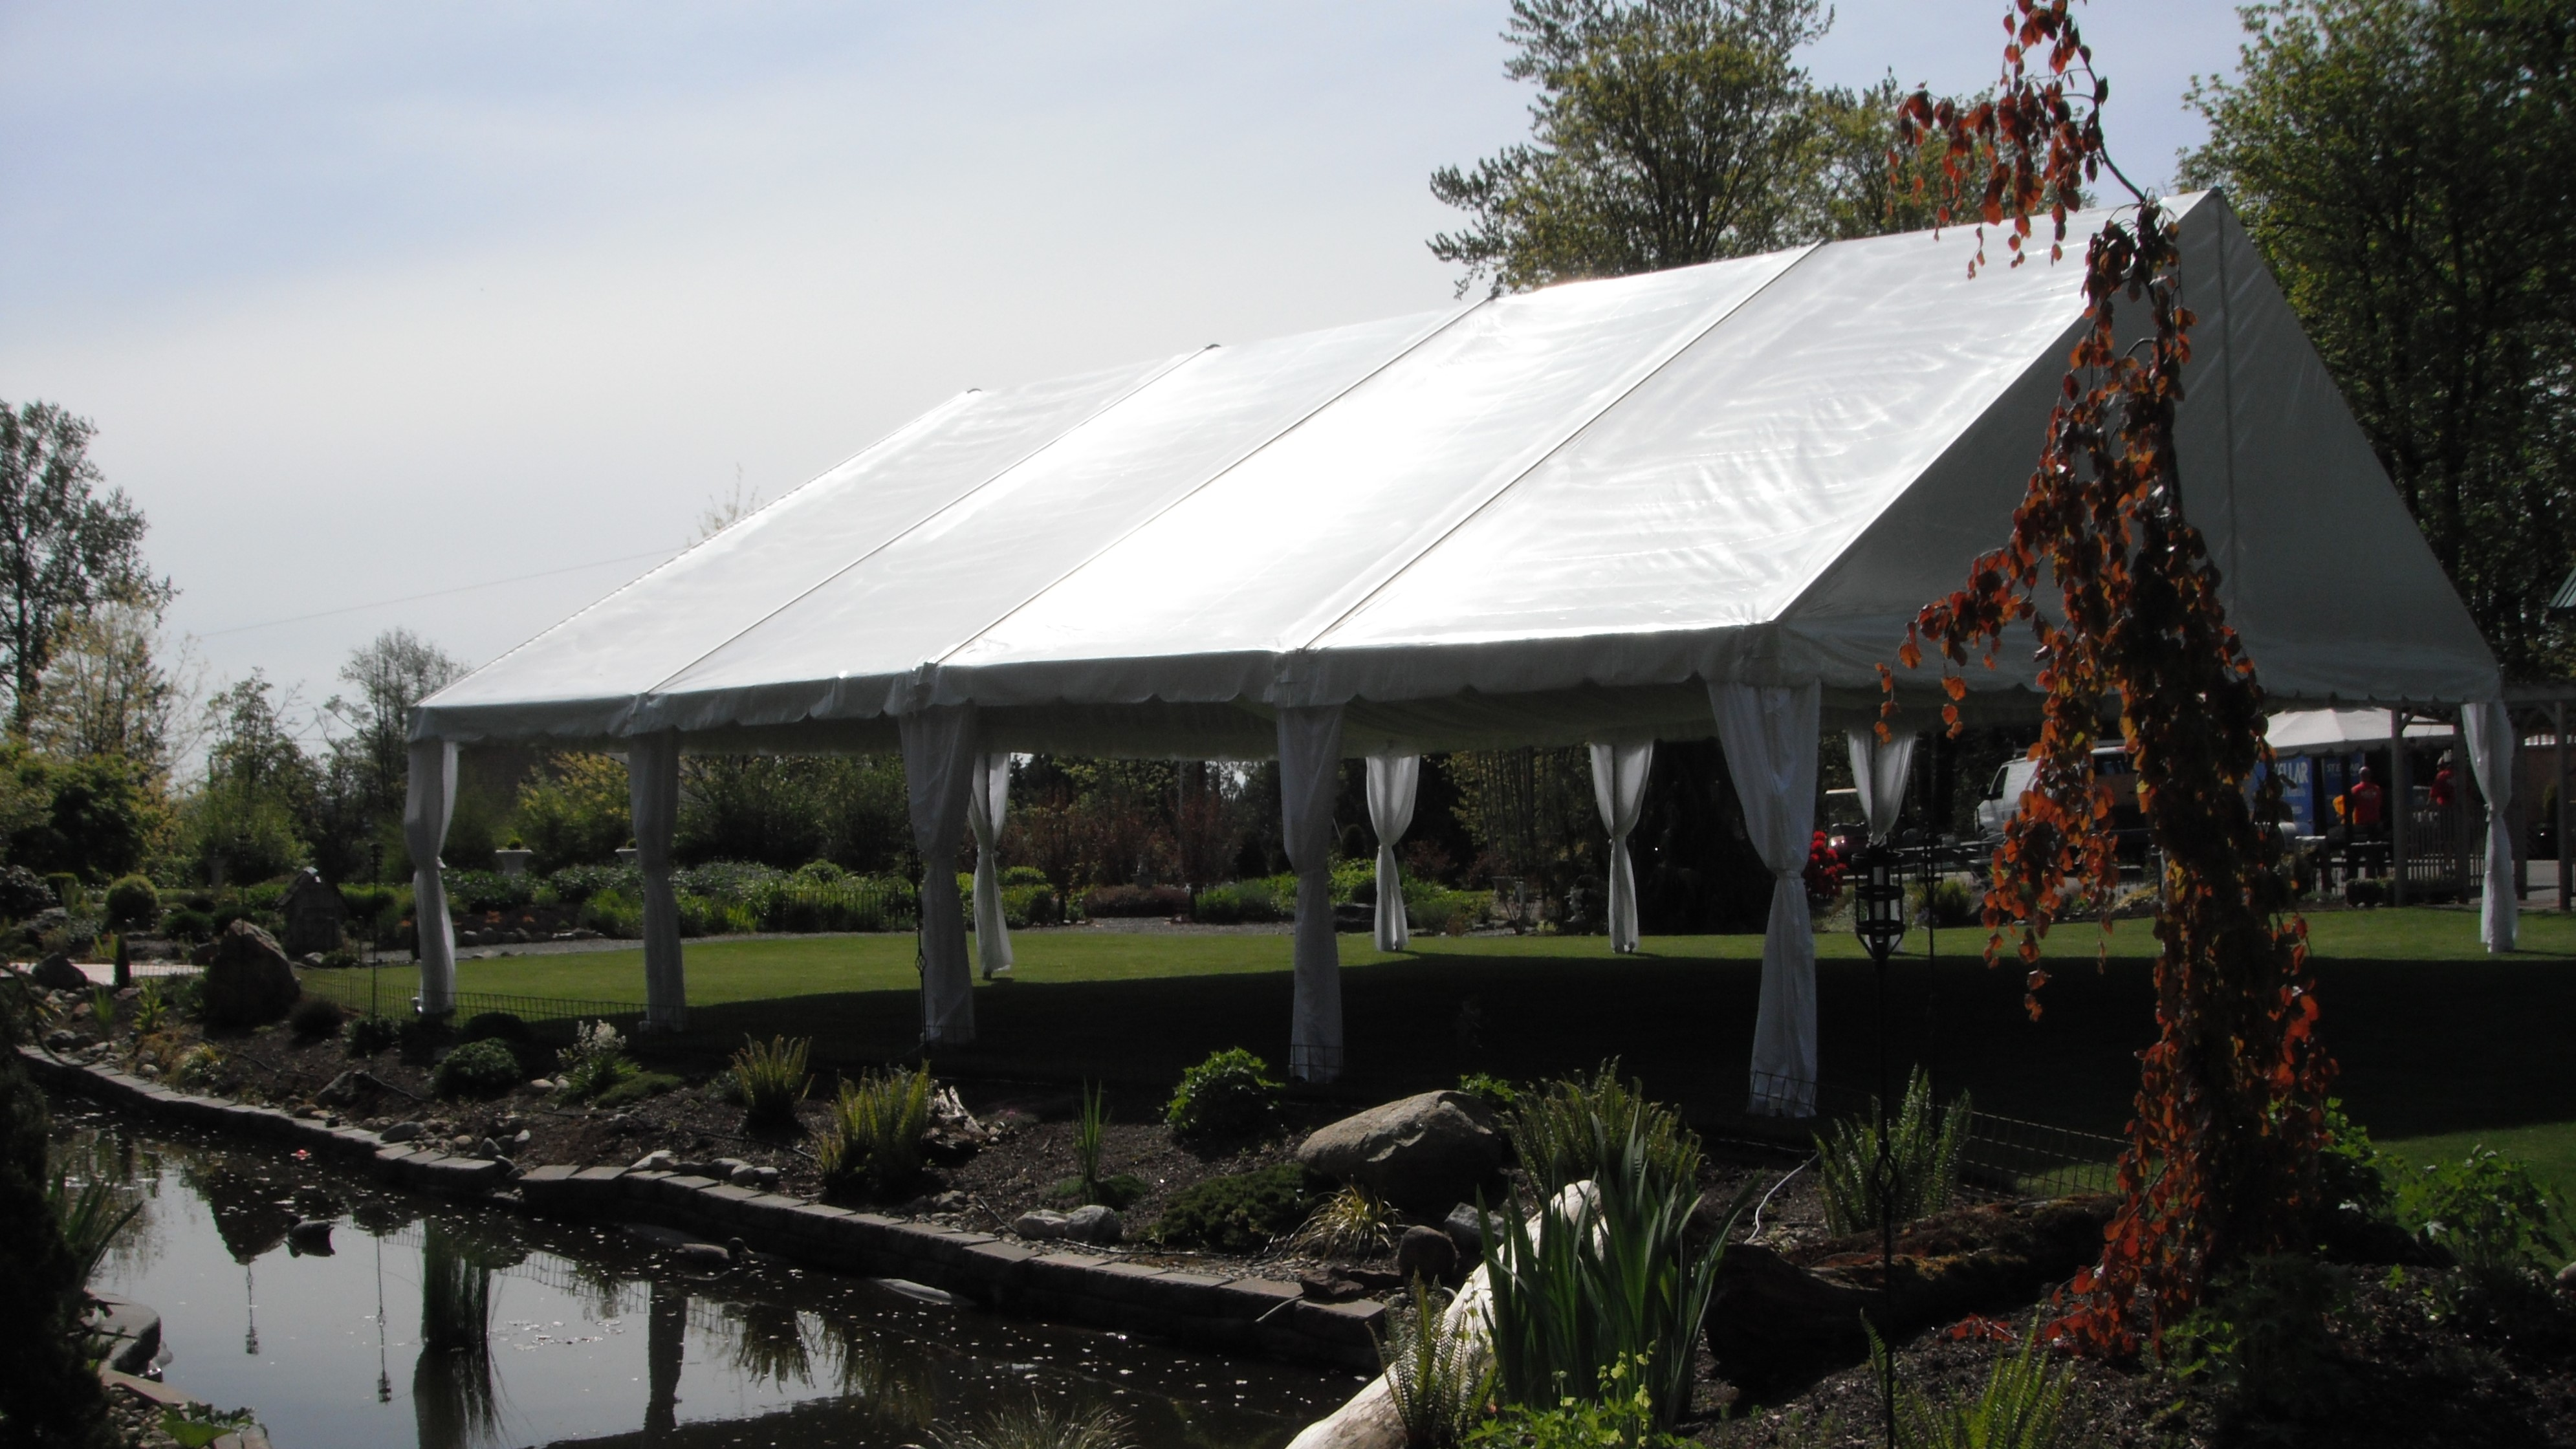 40x40 tent at TWG